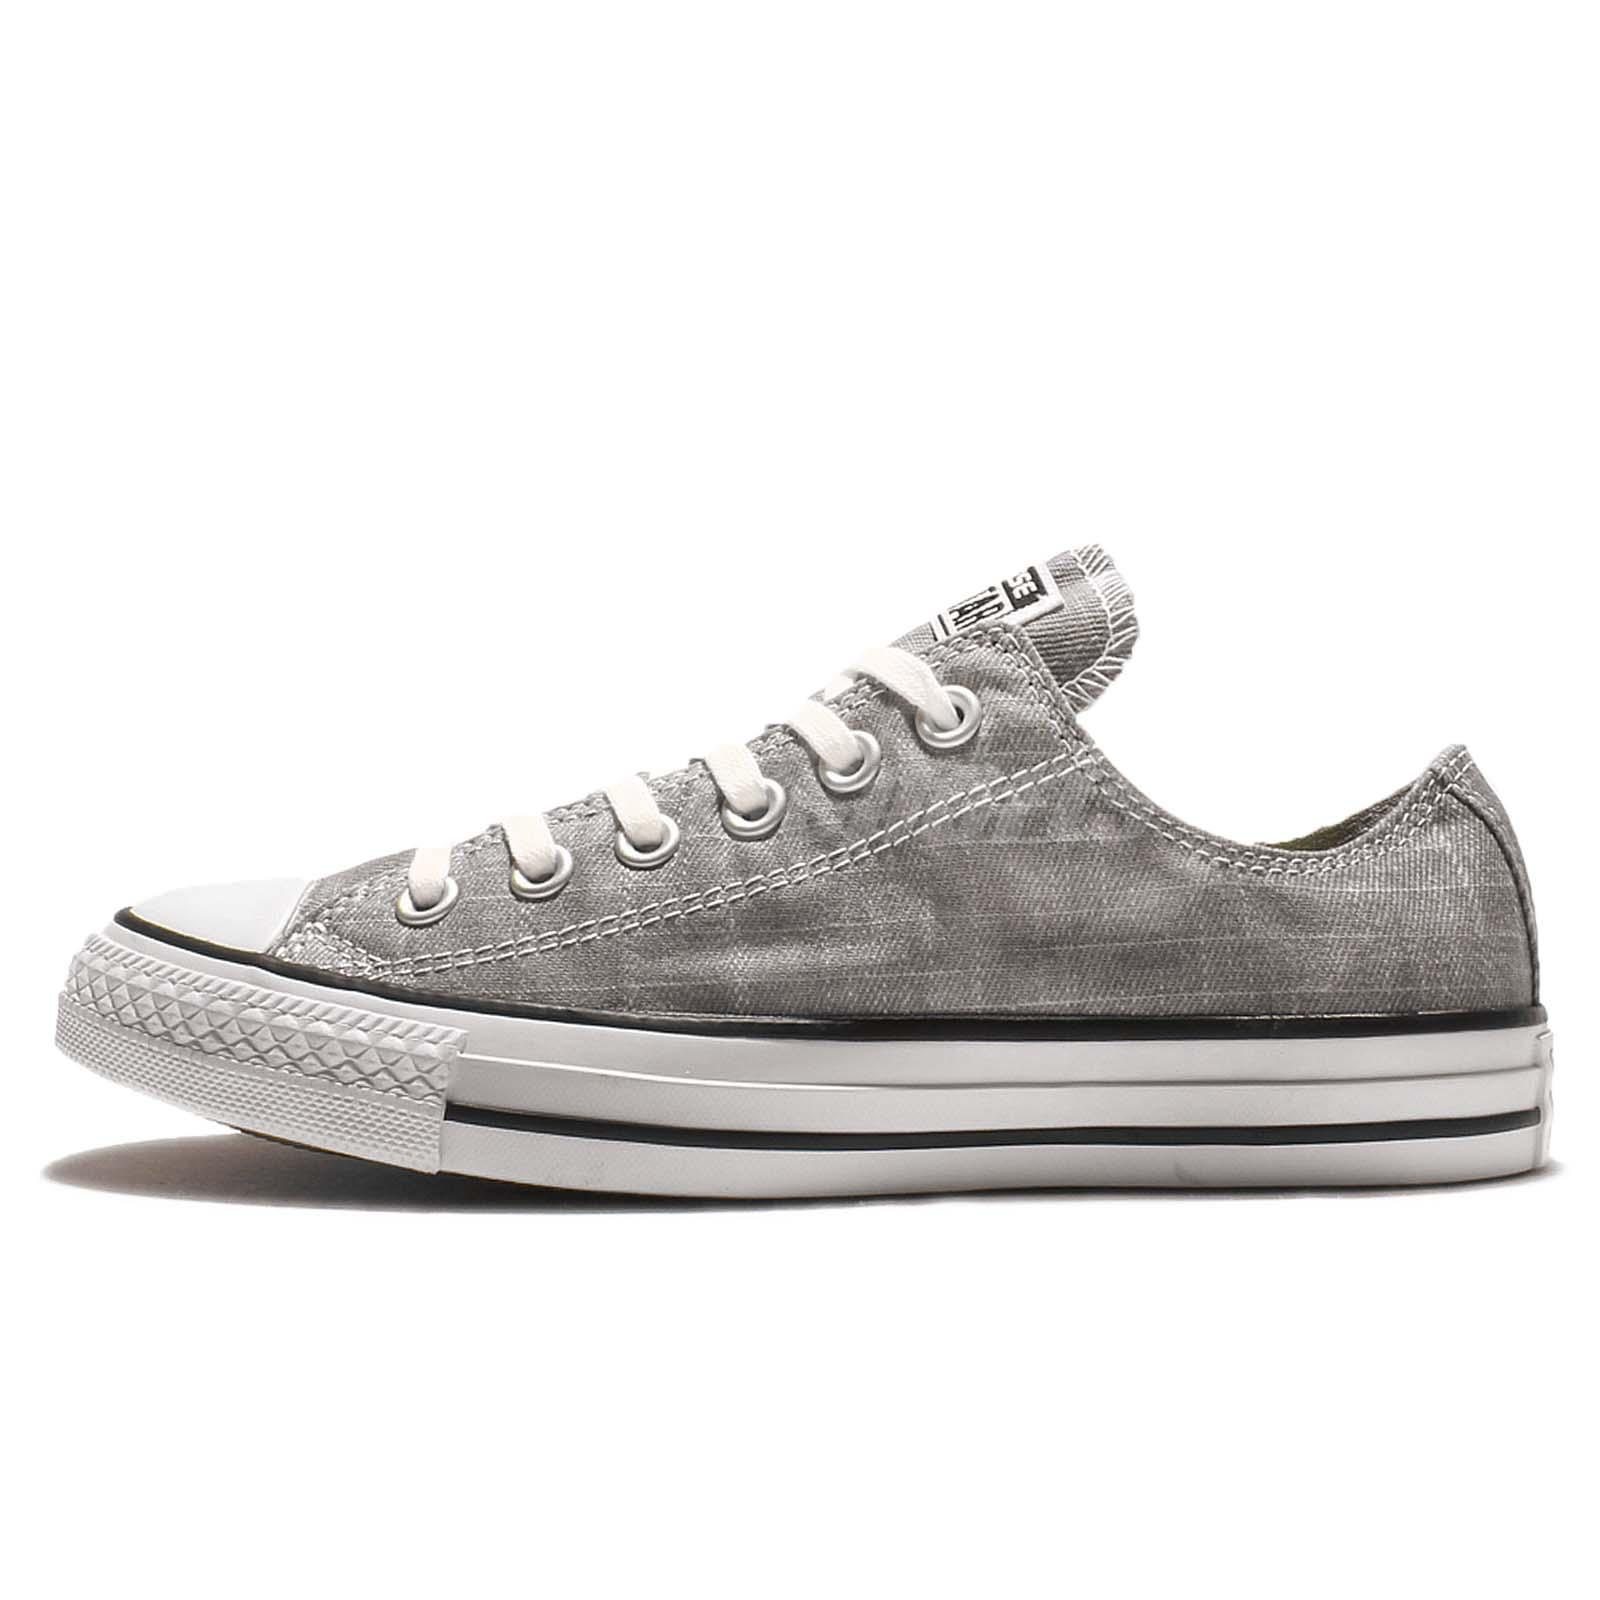 converse chuck taylor all star light grey low cut canvas. Black Bedroom Furniture Sets. Home Design Ideas